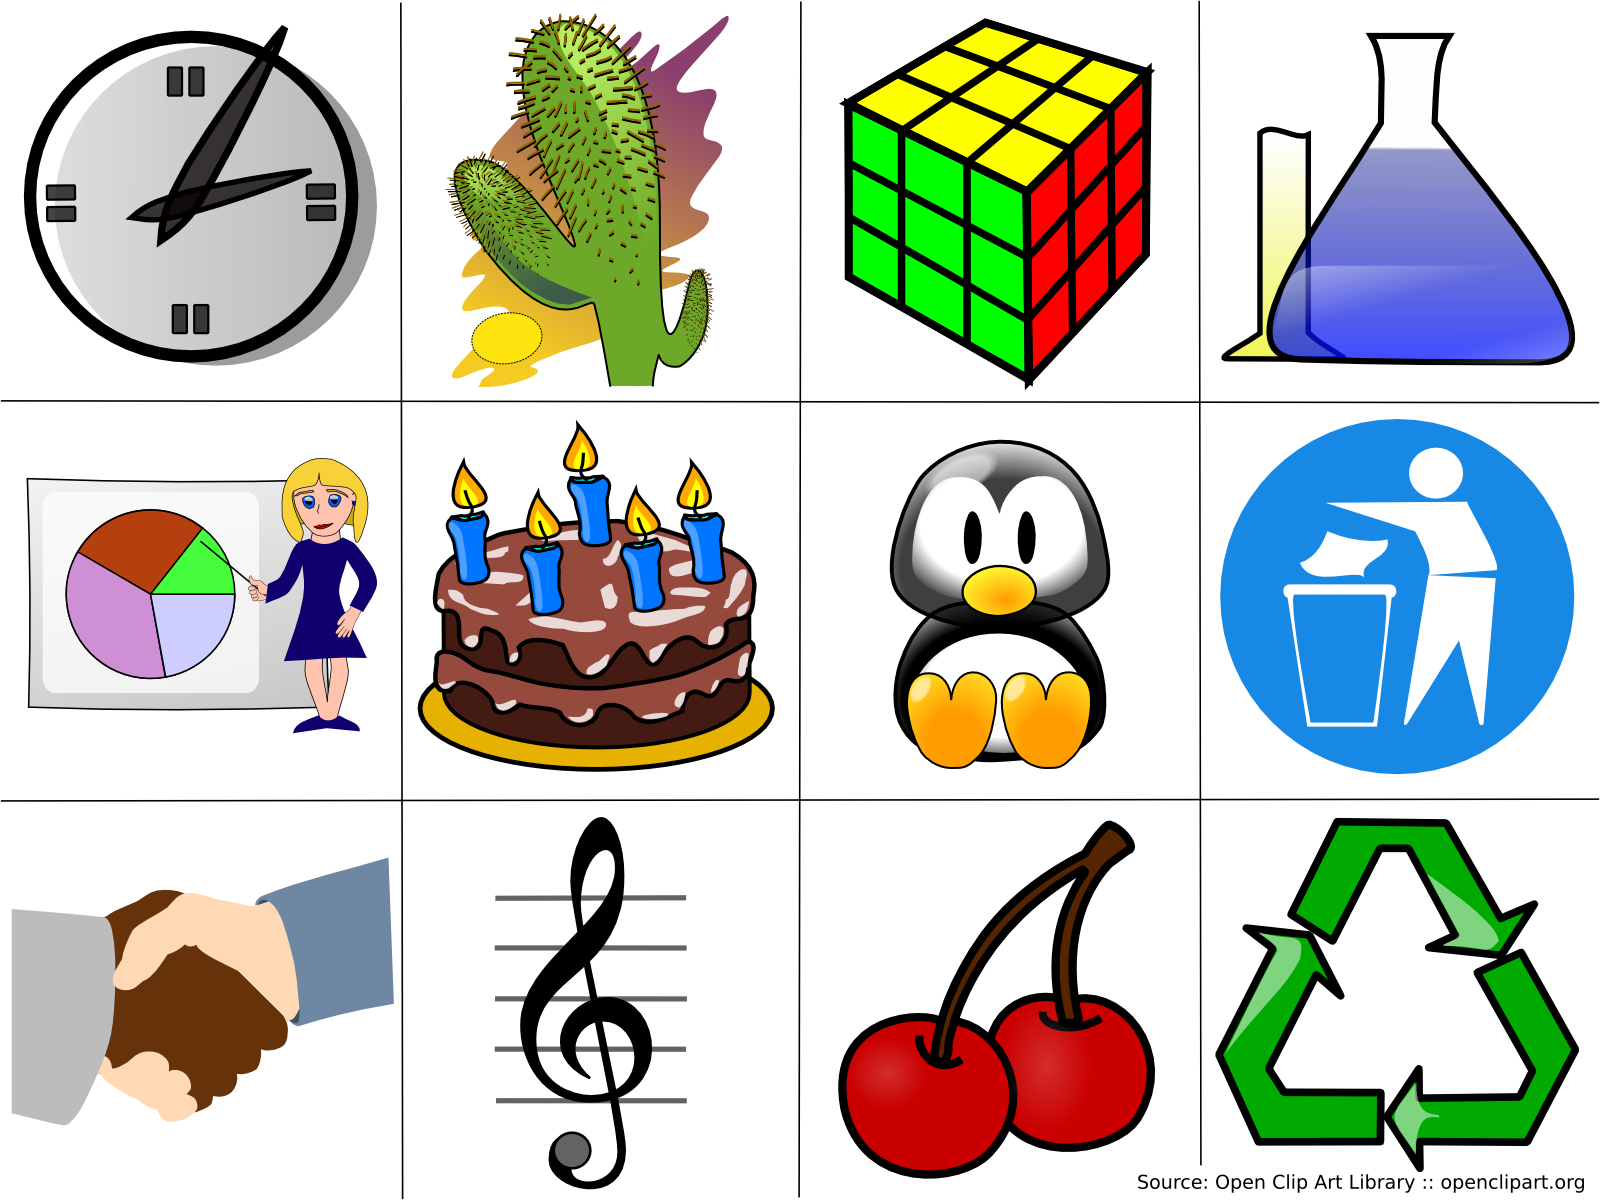 Clip art - Wikipedia, the free encyclope-Clip art - Wikipedia, the free encyclopedia-15